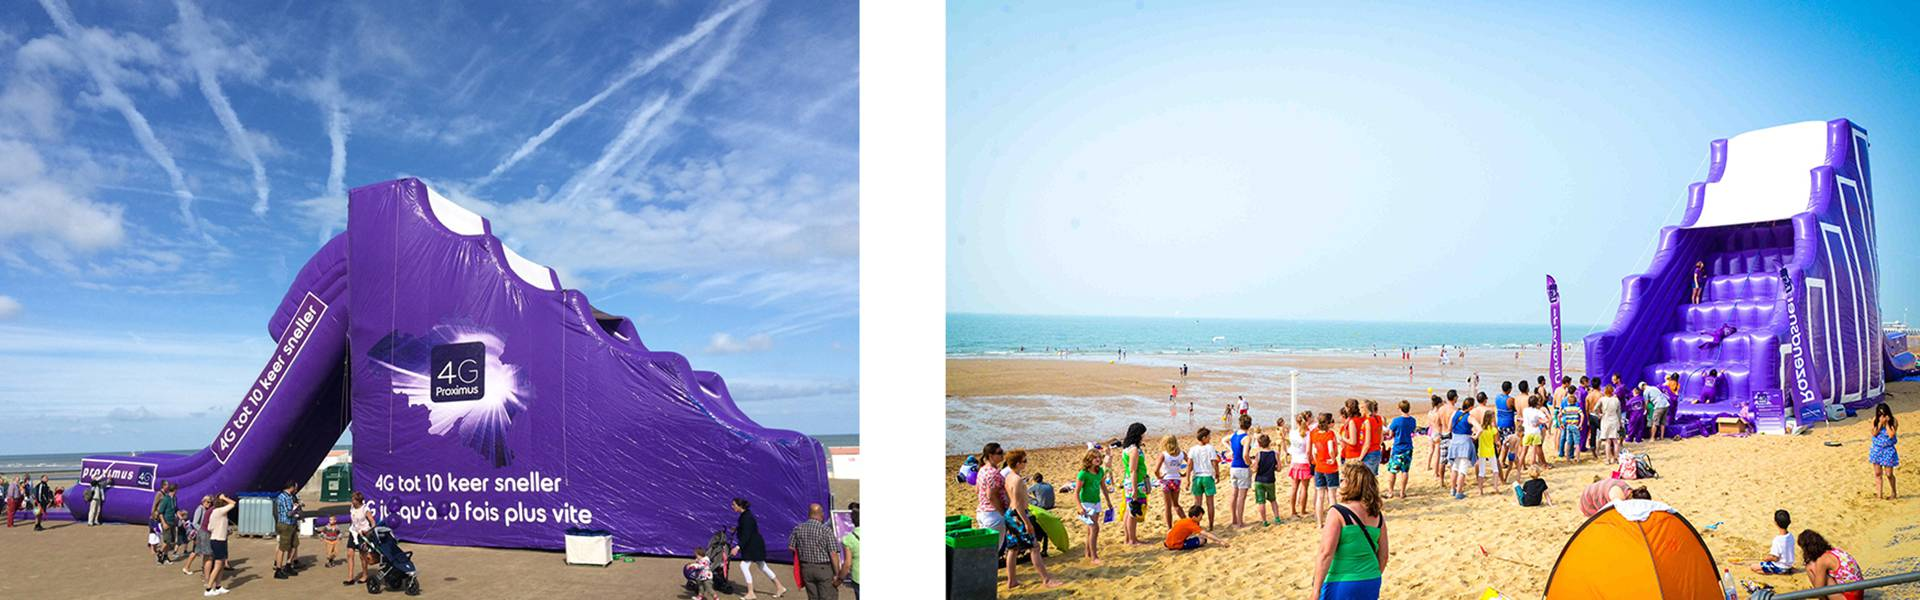 Giant inflatables are X-Treme Creations' core business.  Proximus Demonstr8 X-Treme Creations